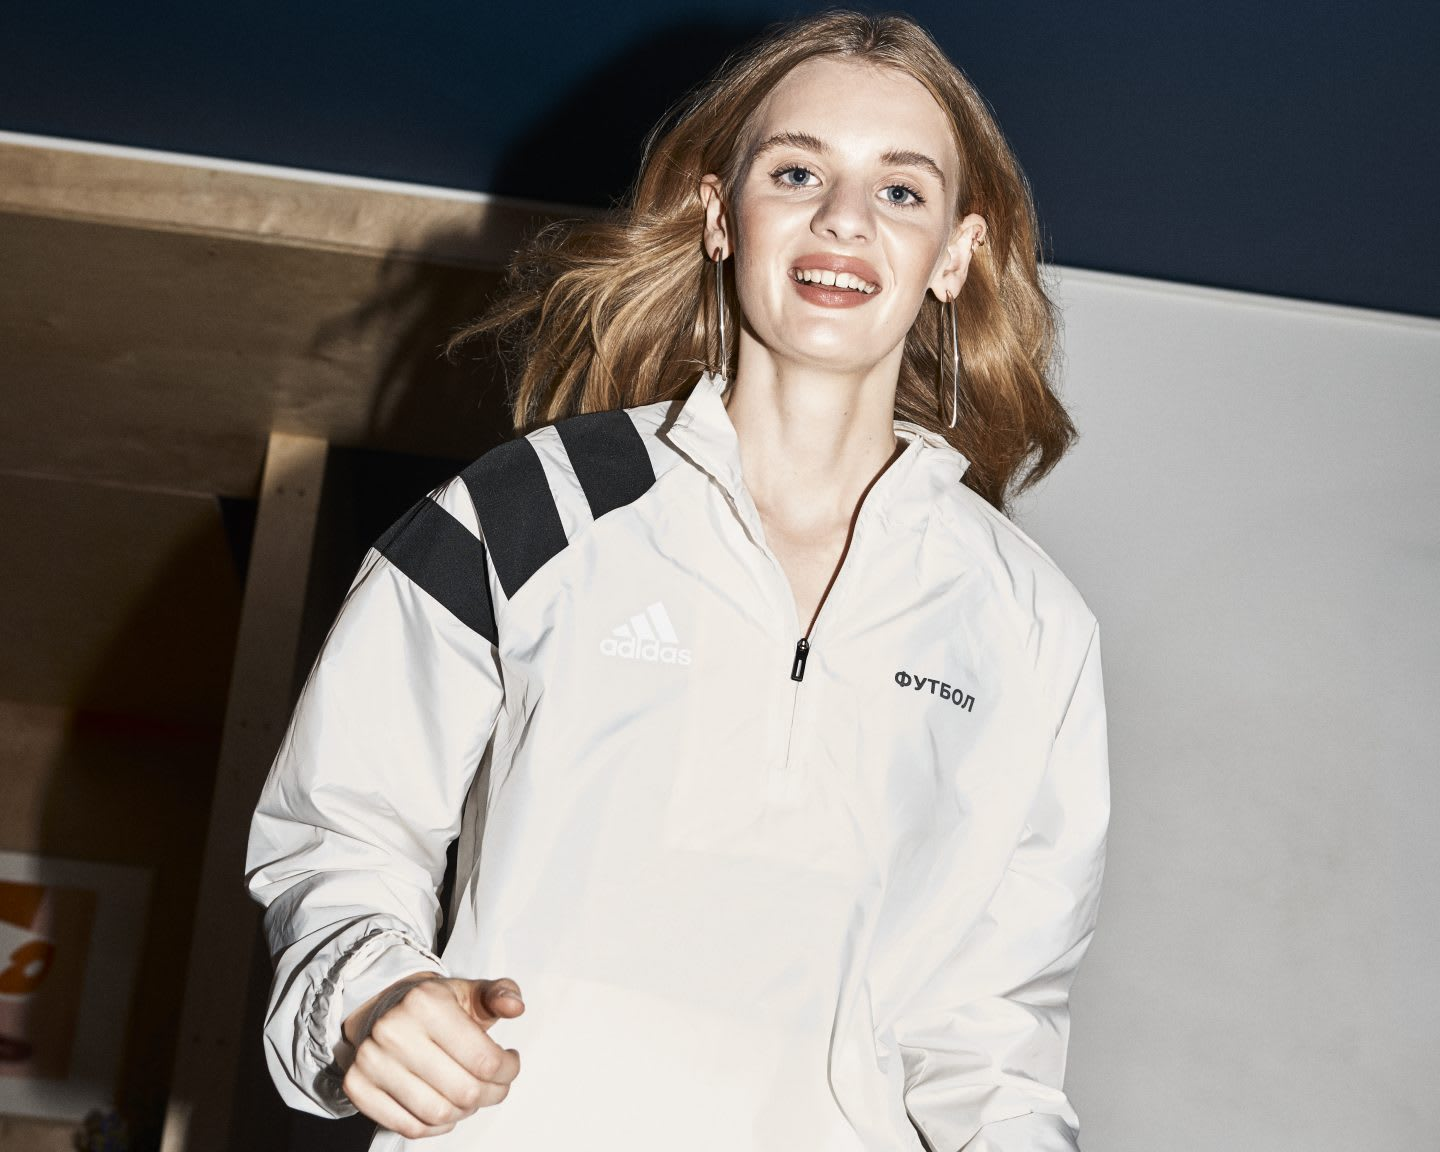 A woman is walking towards the camera with a smile. She is wearing an adidas Football track top. diversity, empowerment, female fan, GamePlan A, SEASON zine